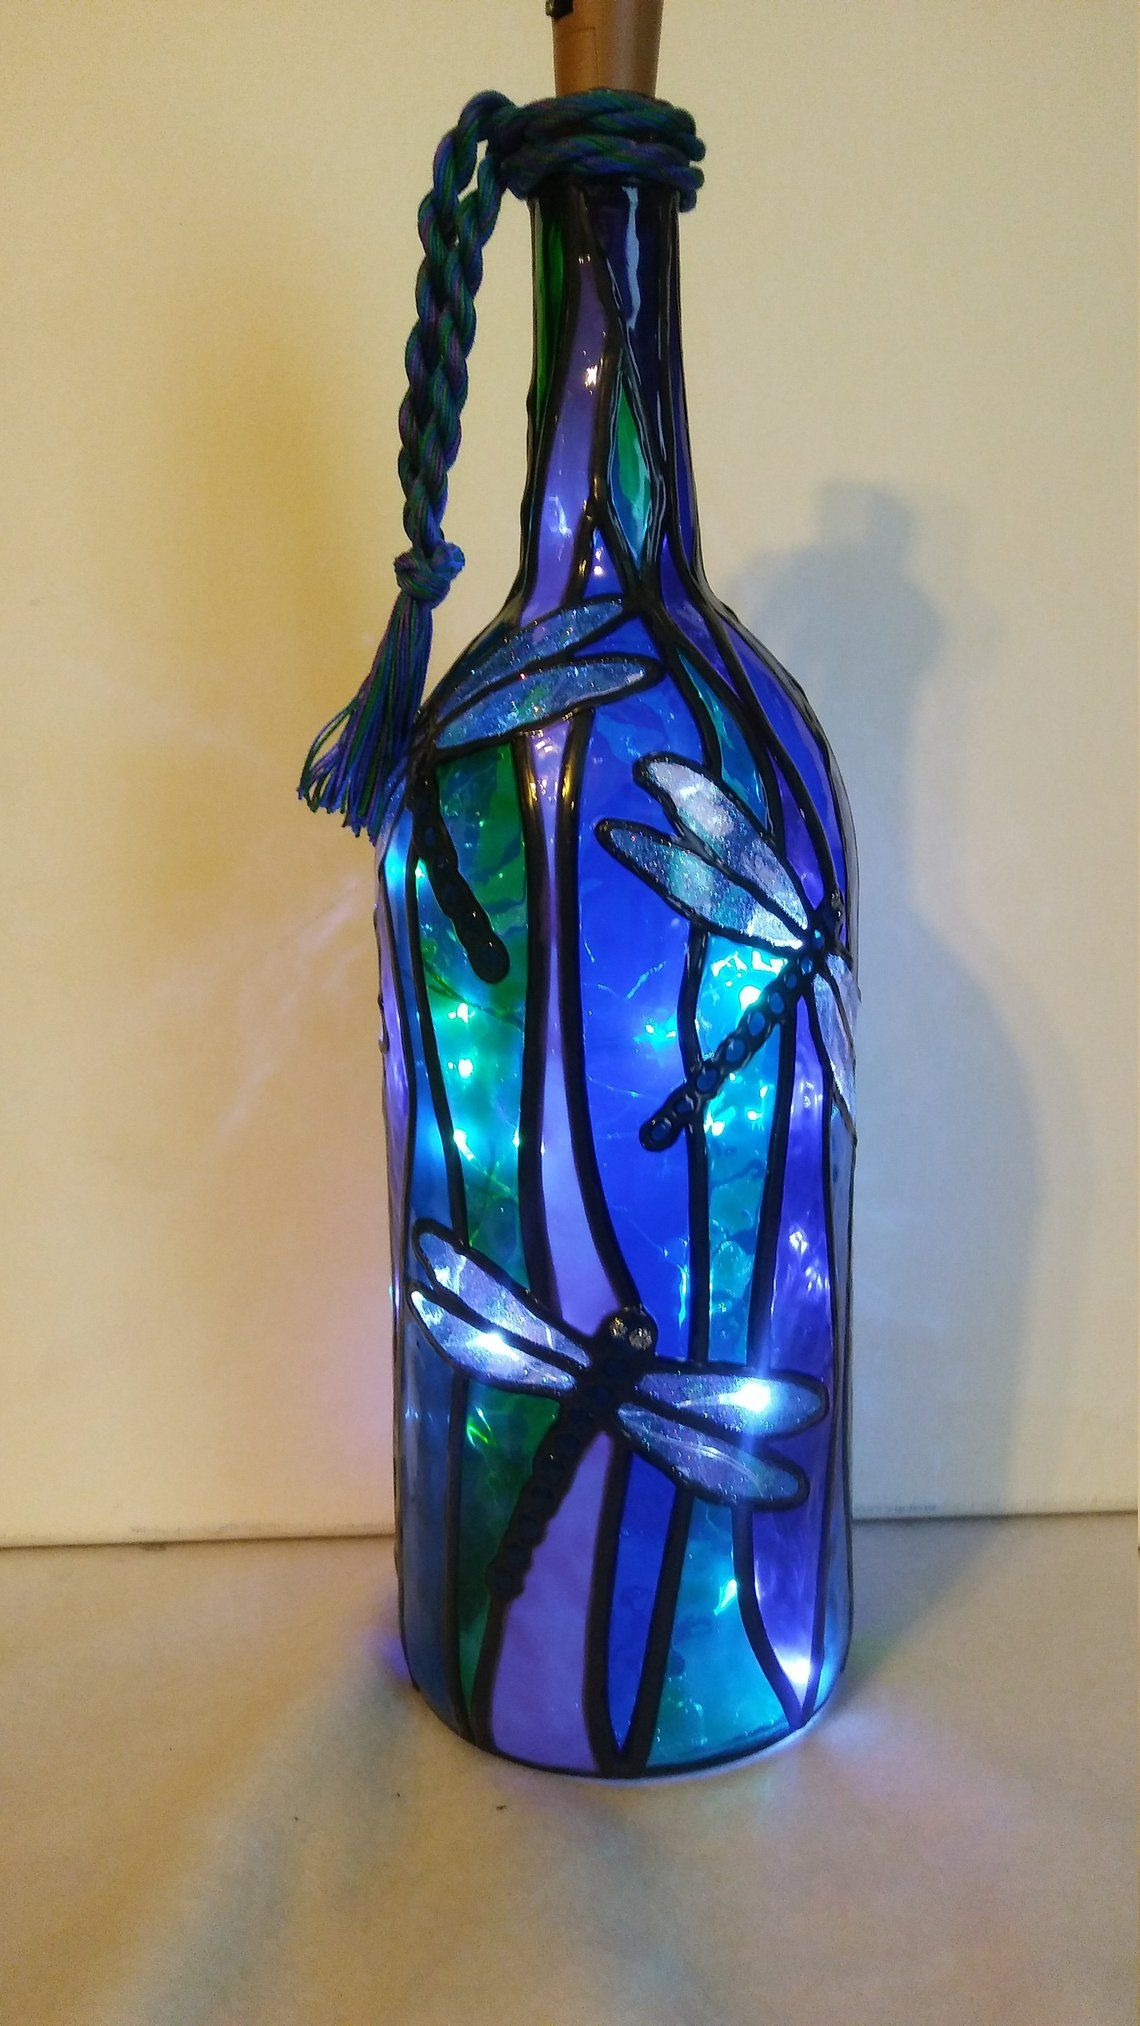 Dragonfly Lighted Handpainted Wine Bottle Inspired Stained Etsy Wine Bottle Lamp Painted Glass Bottles Wine Bottle Diy Crafts